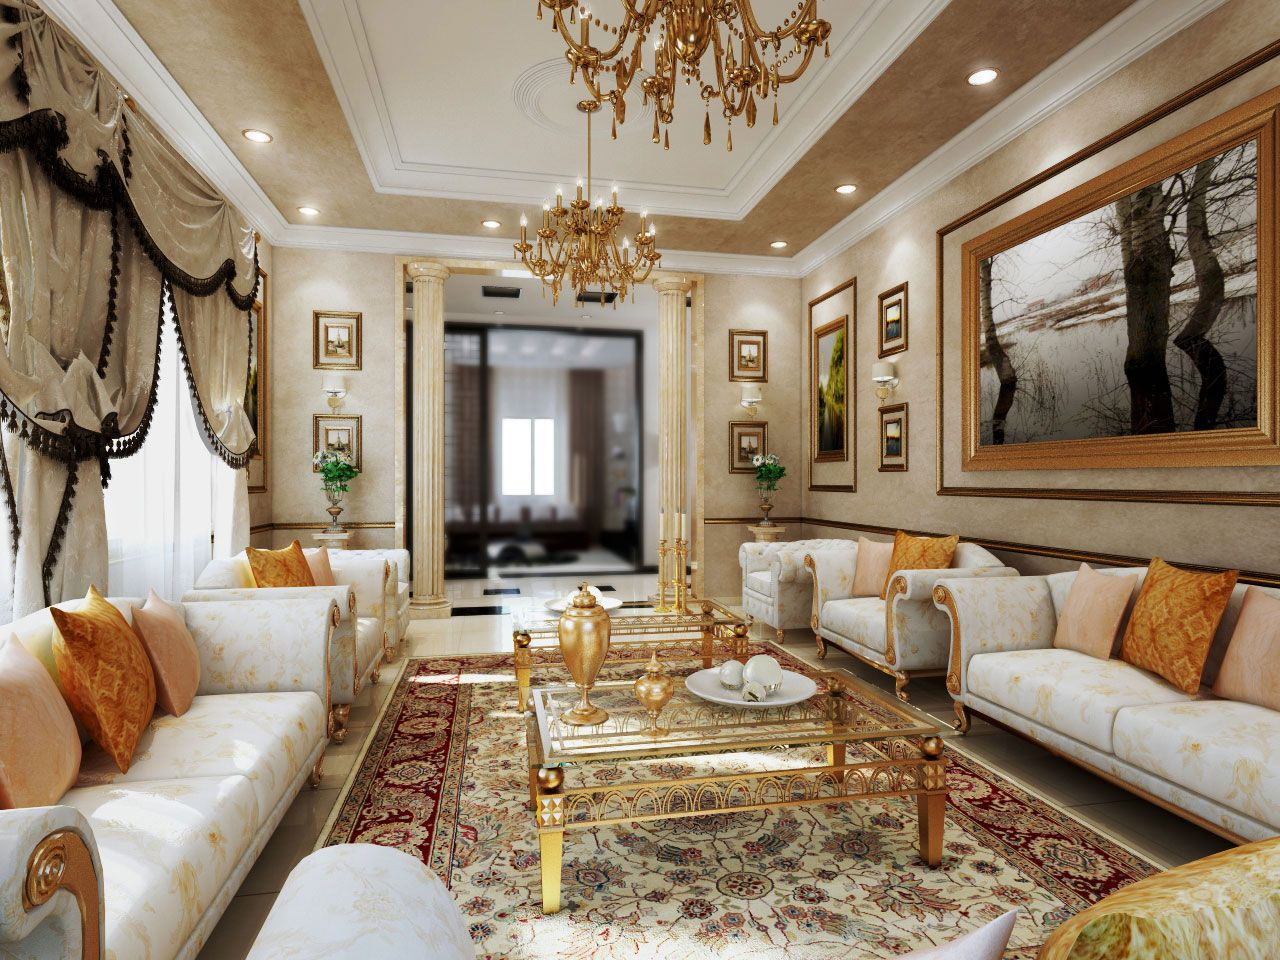 Classy amusing Interior Ideas For Living Room With Gold Candlelier ...